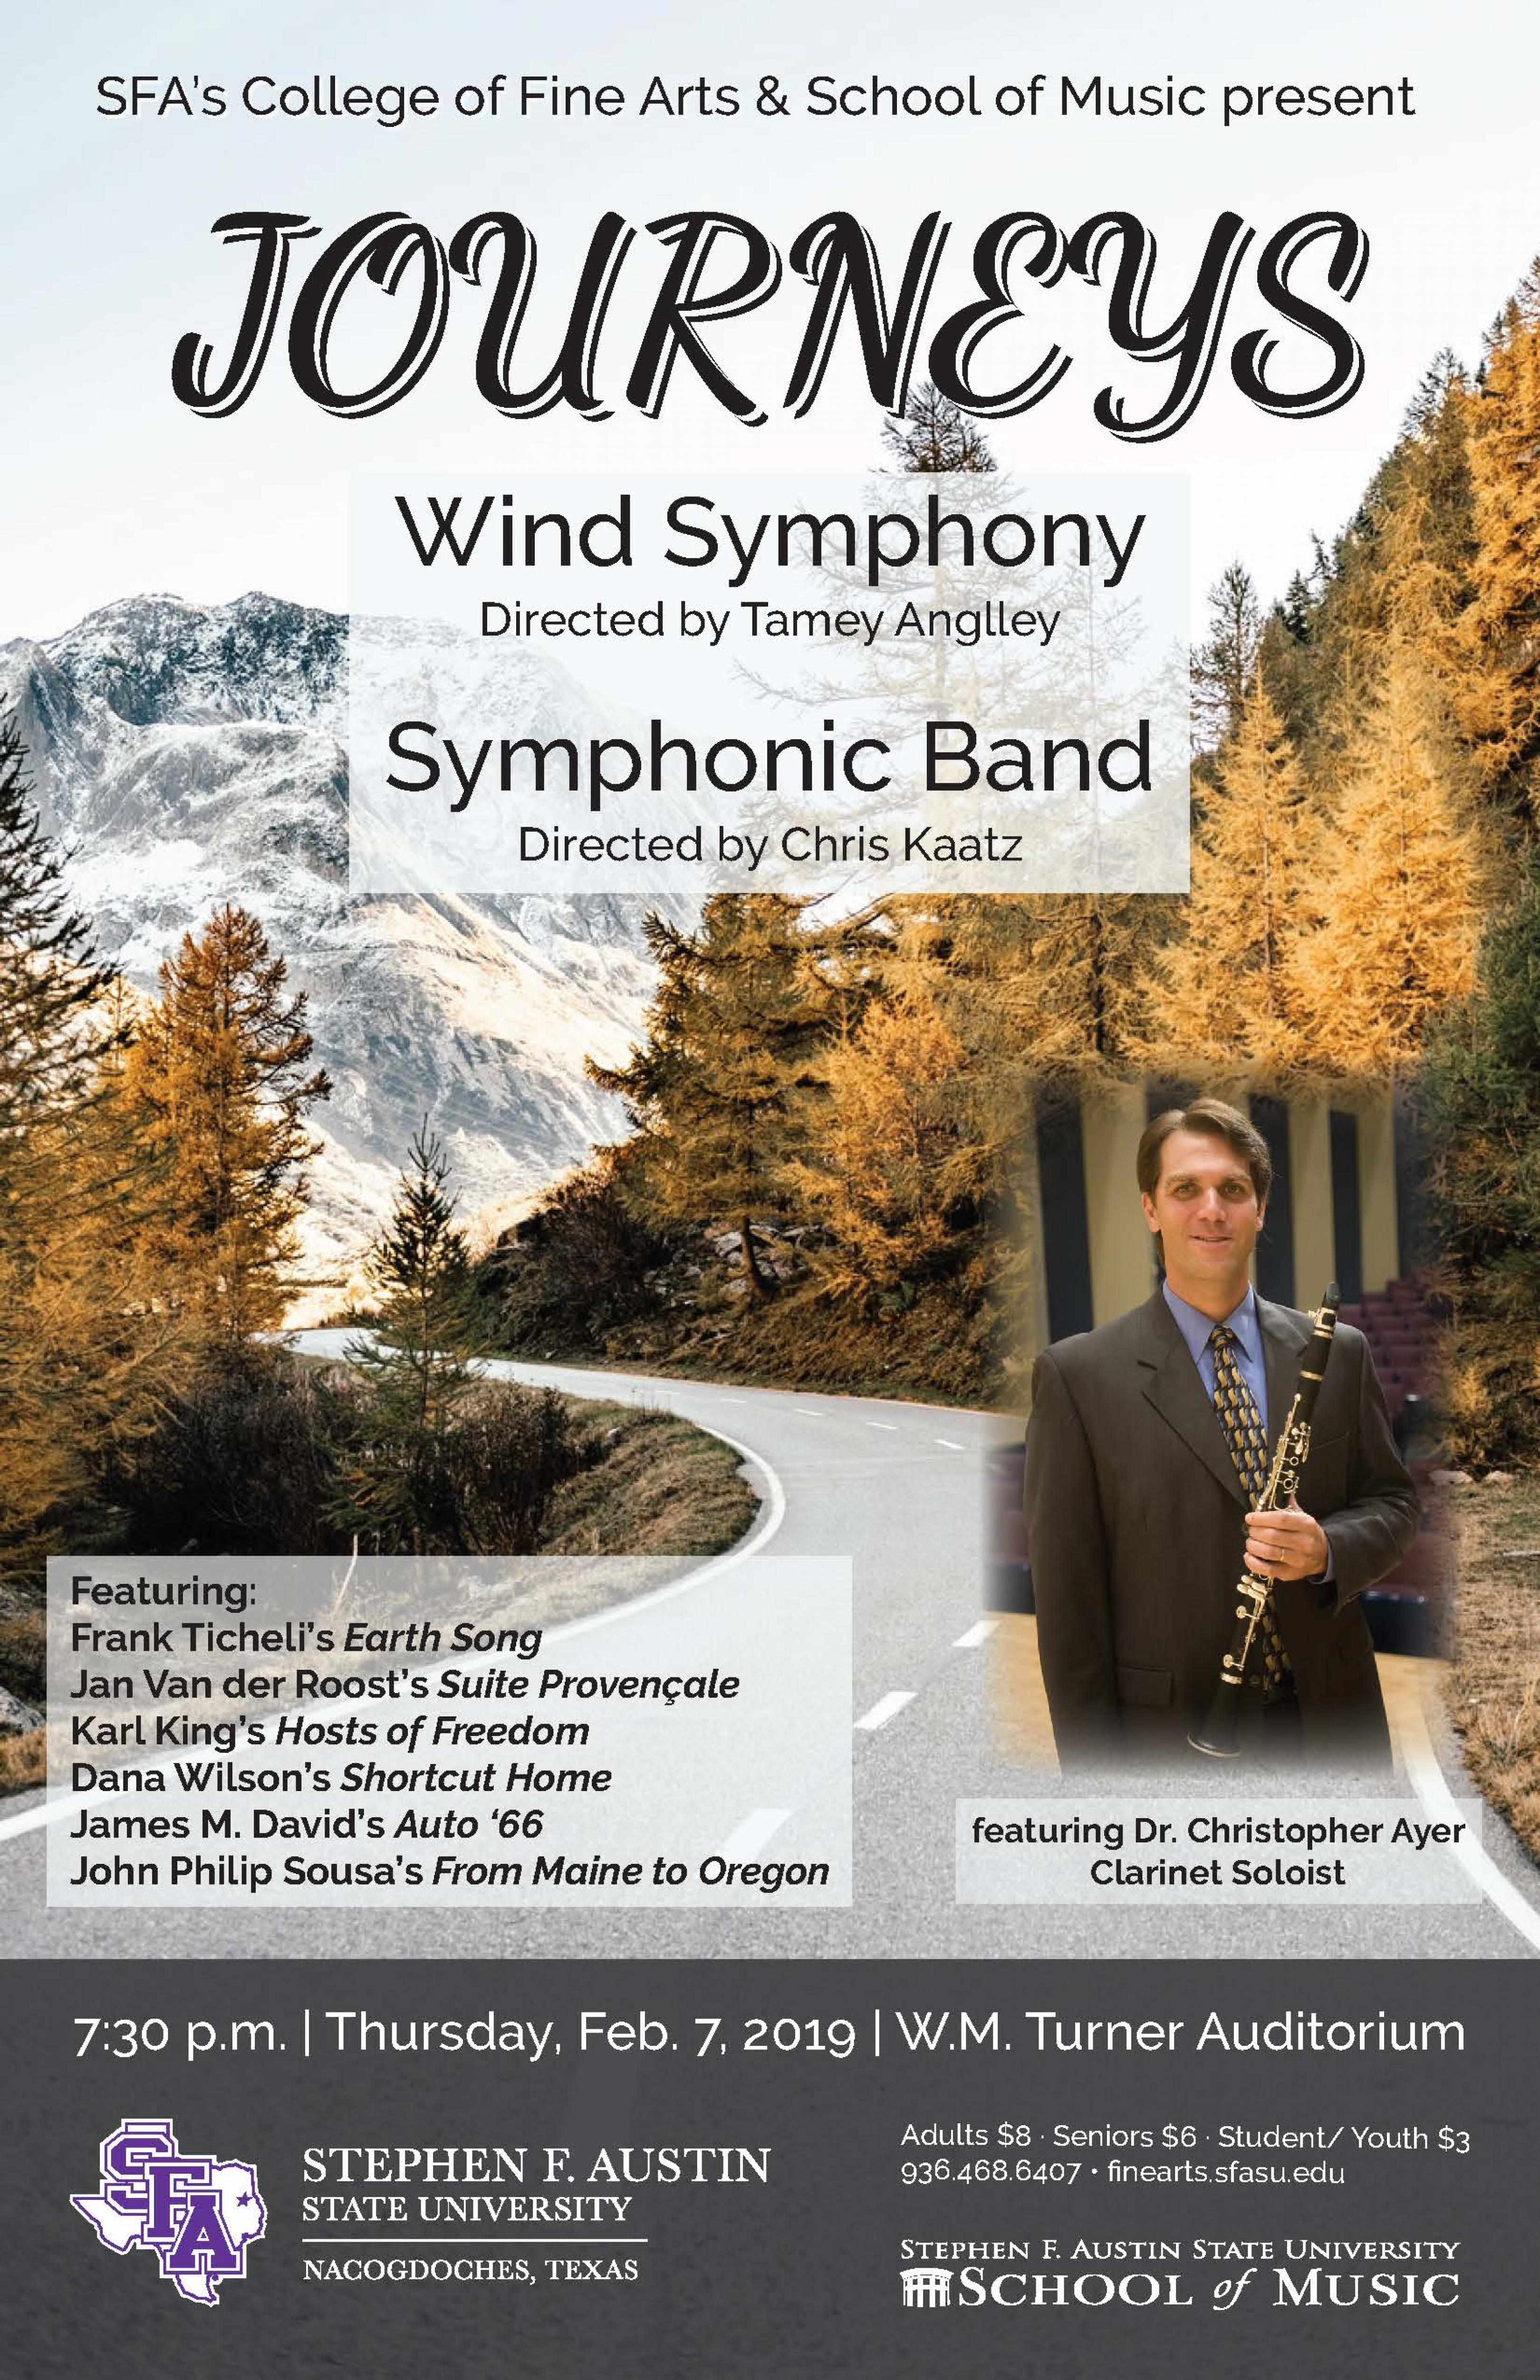 publicity image for Wind Symphony/Symphonic Band